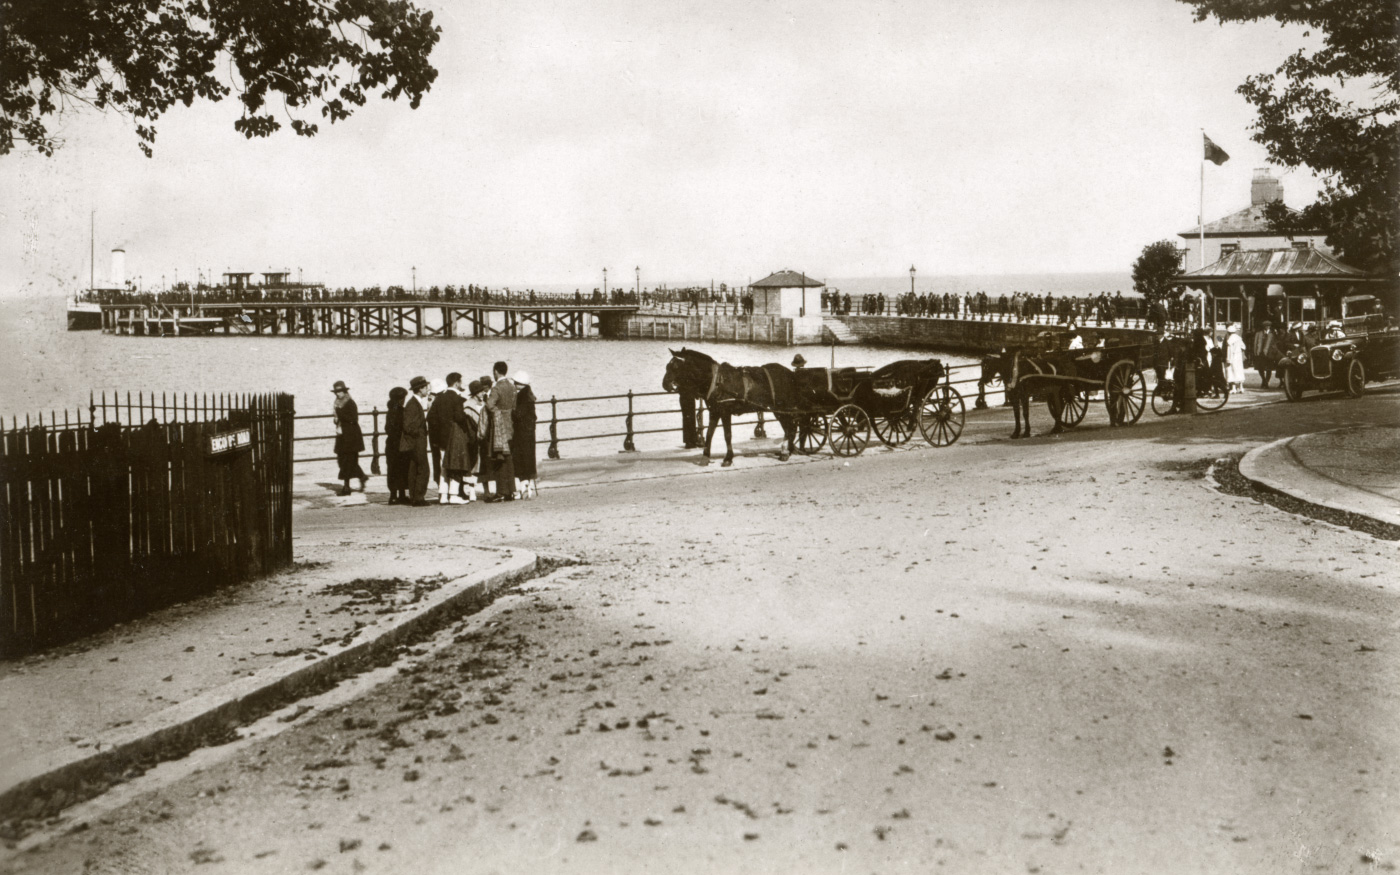 Charabanc and Horses at the Pier